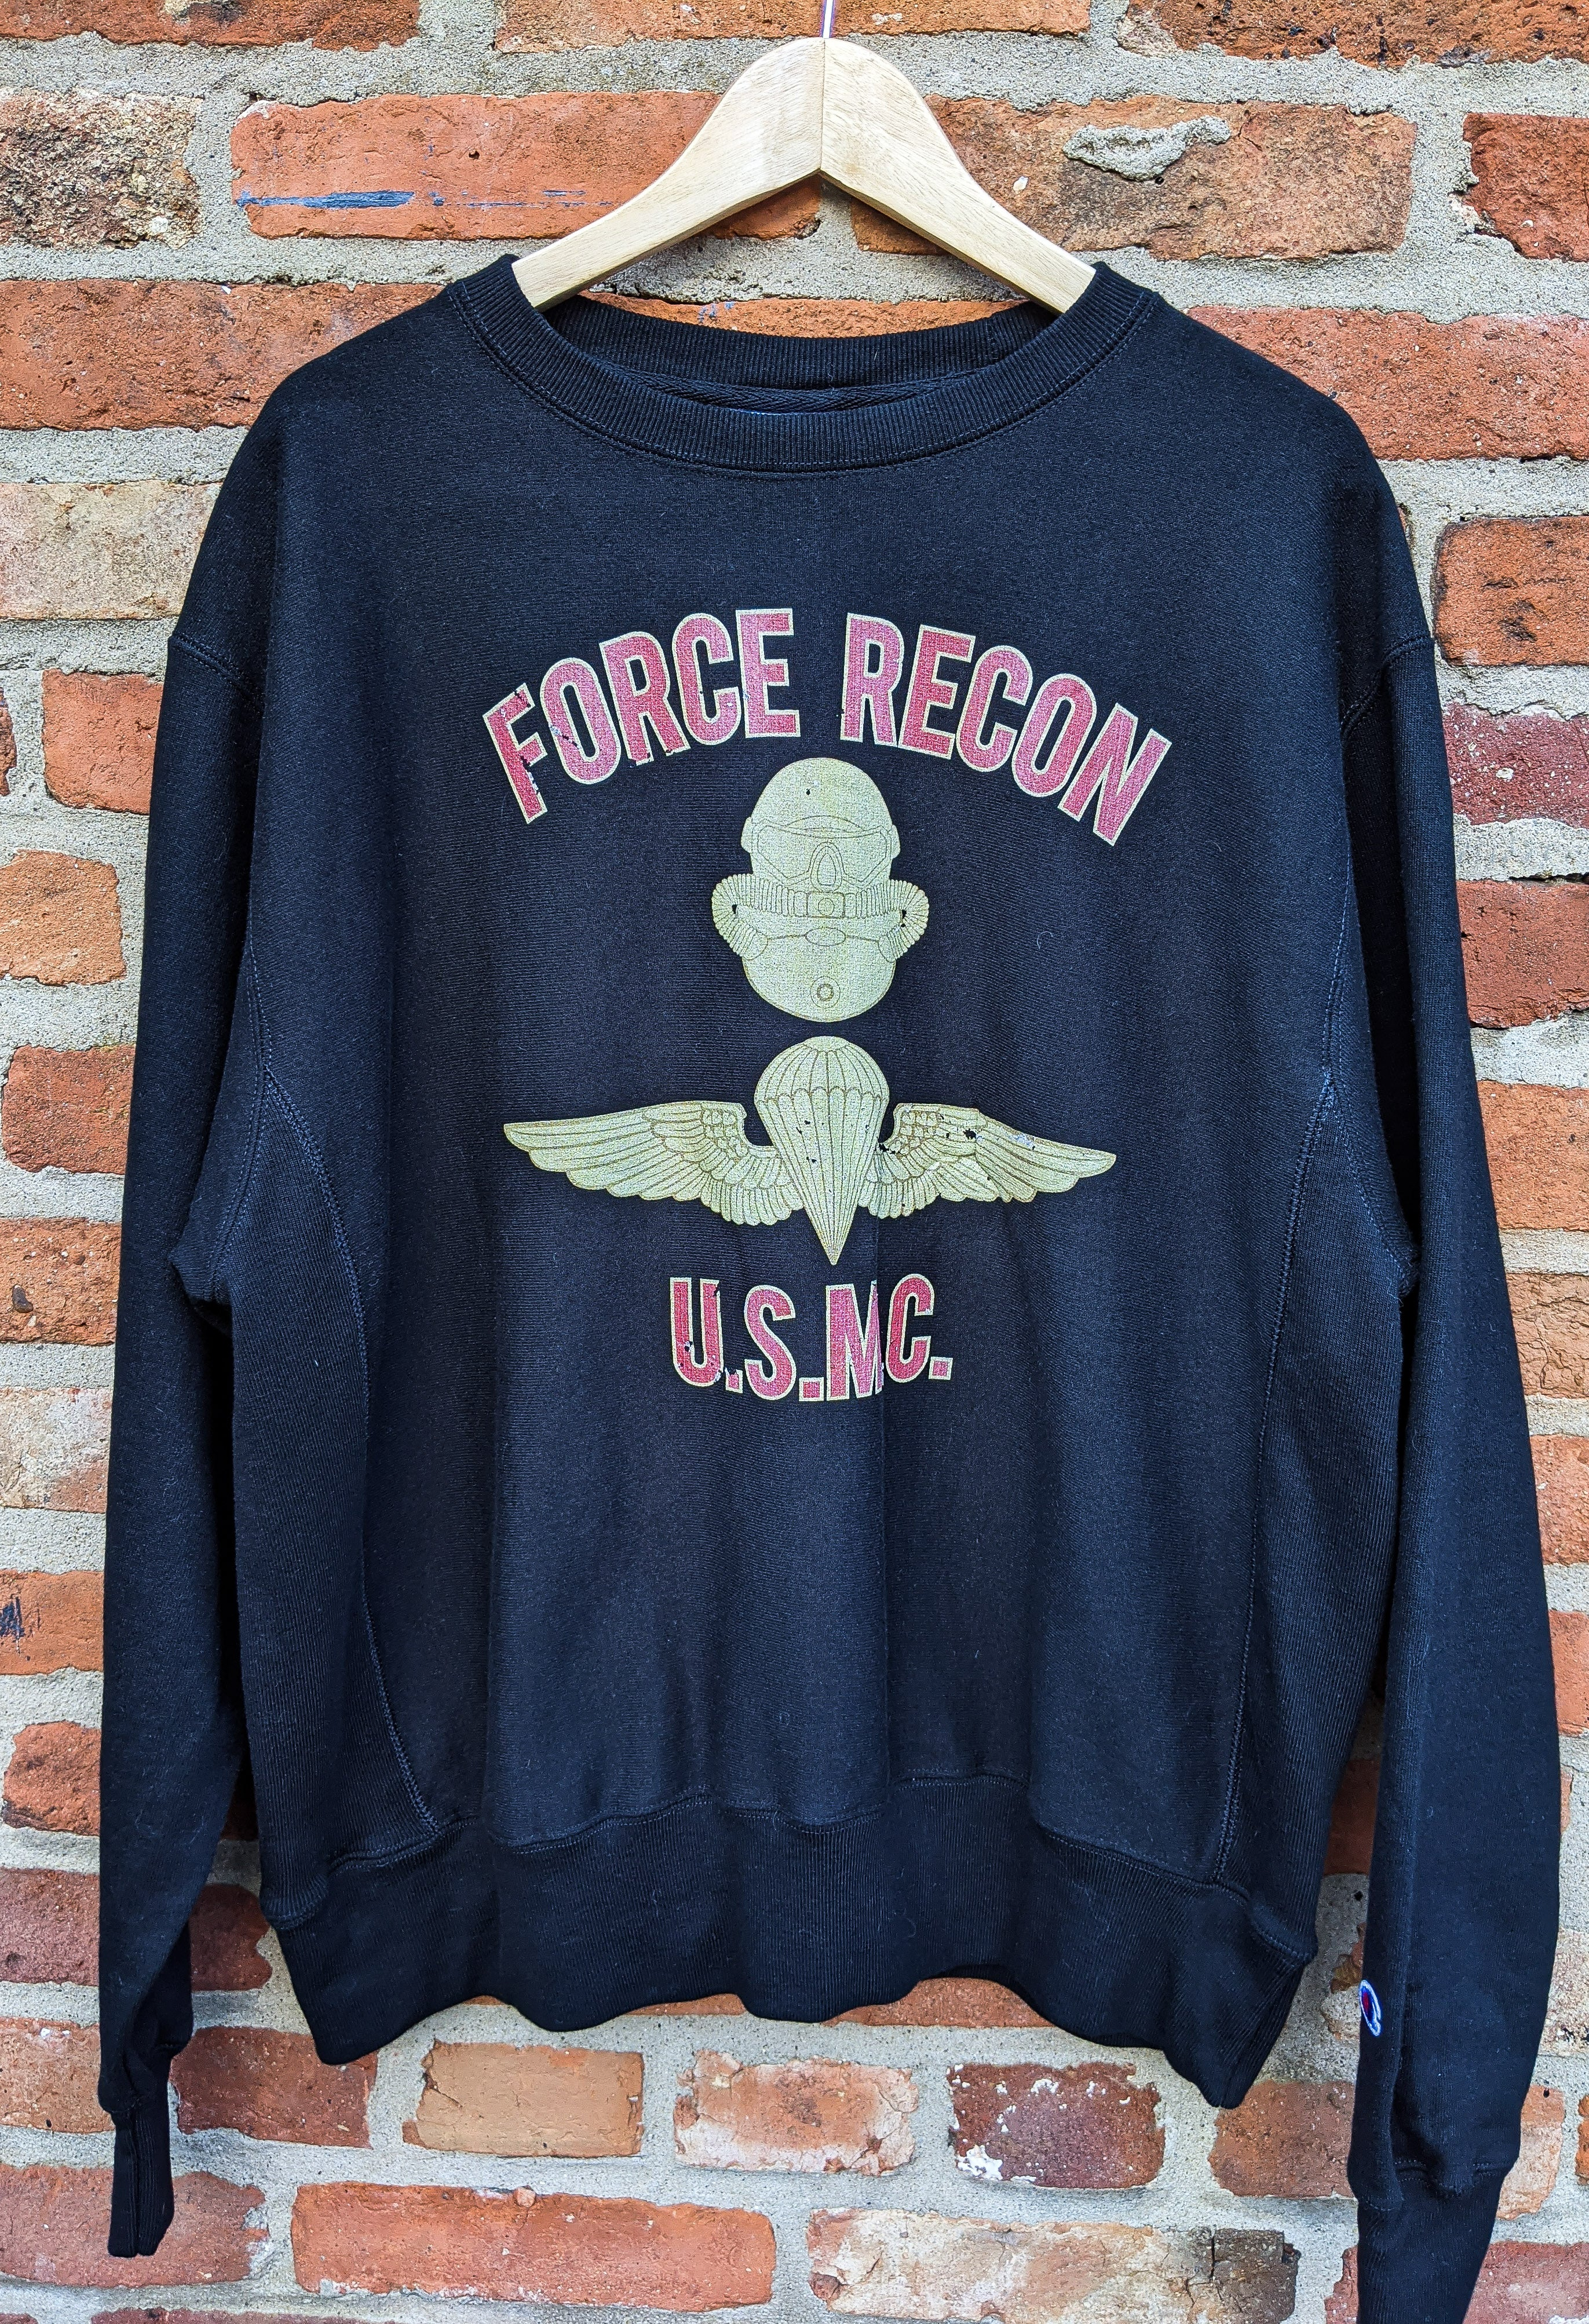 Champion Force Recon crew neck sweatshirt size L